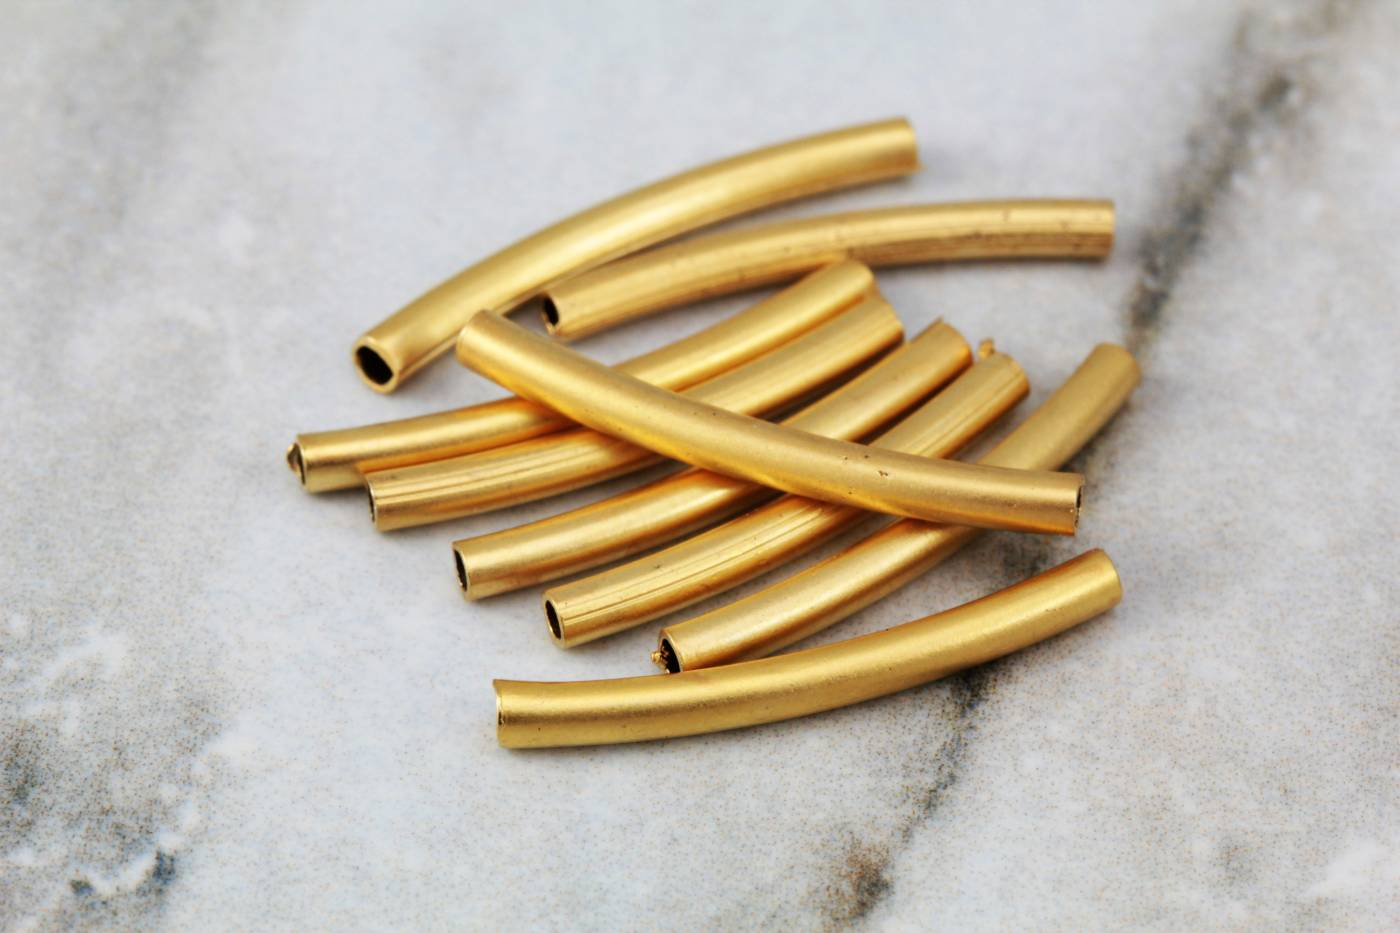 20mm-gold-long-curved-end-bar-charms.jpg